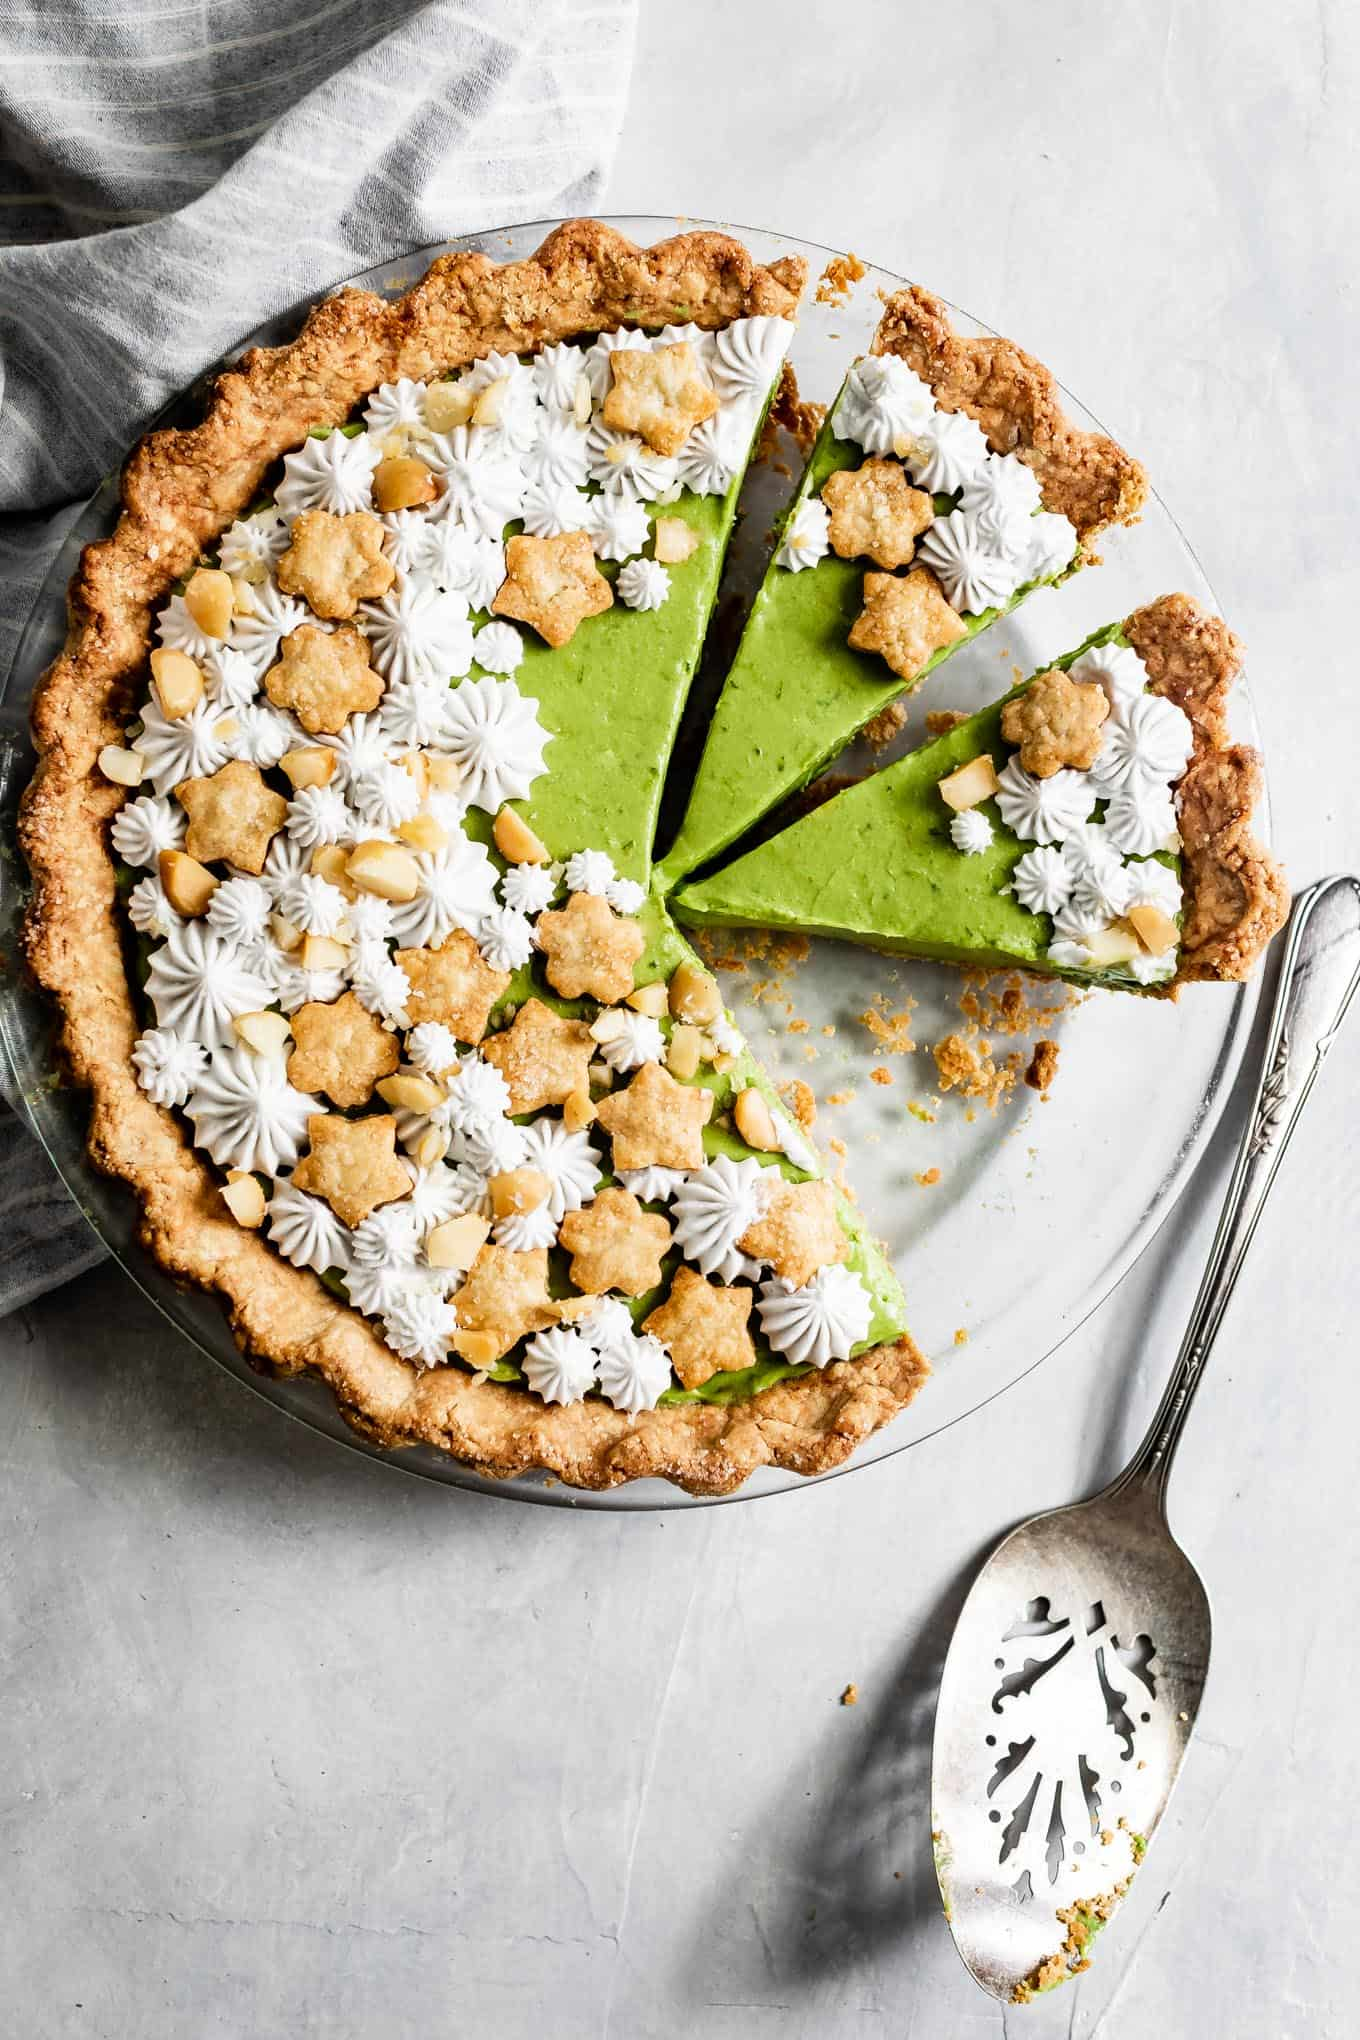 Gluten-Free Key Lime Pie with Matcha